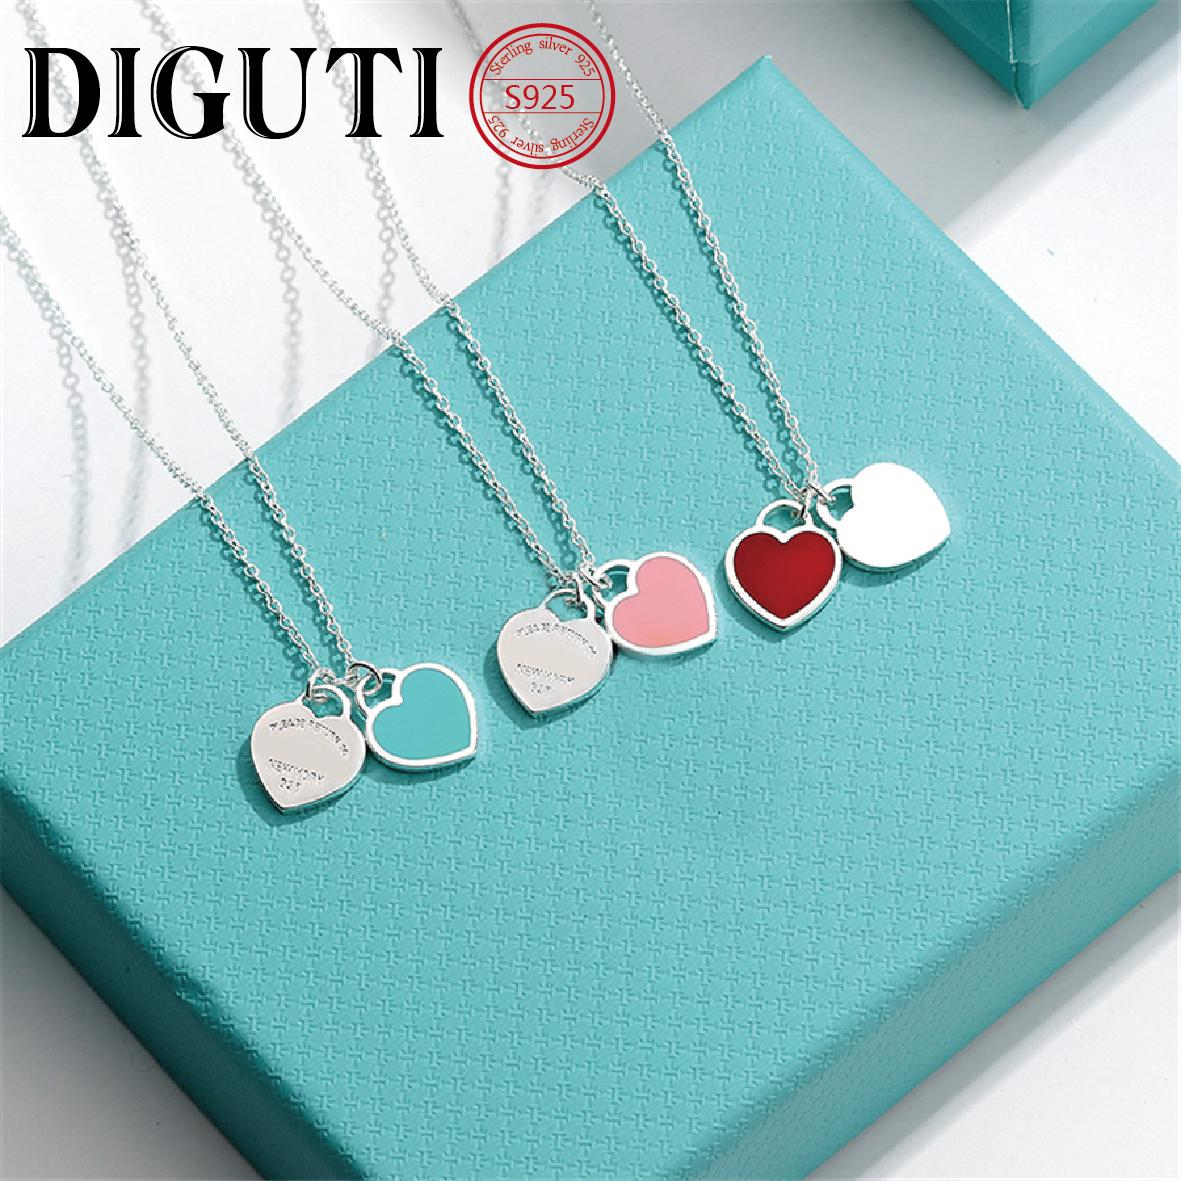 Tiff 925 sterling silver pendant necklace female jewelry high-end craftsmanship, with official logo Tiff blue heart necklace wholesale